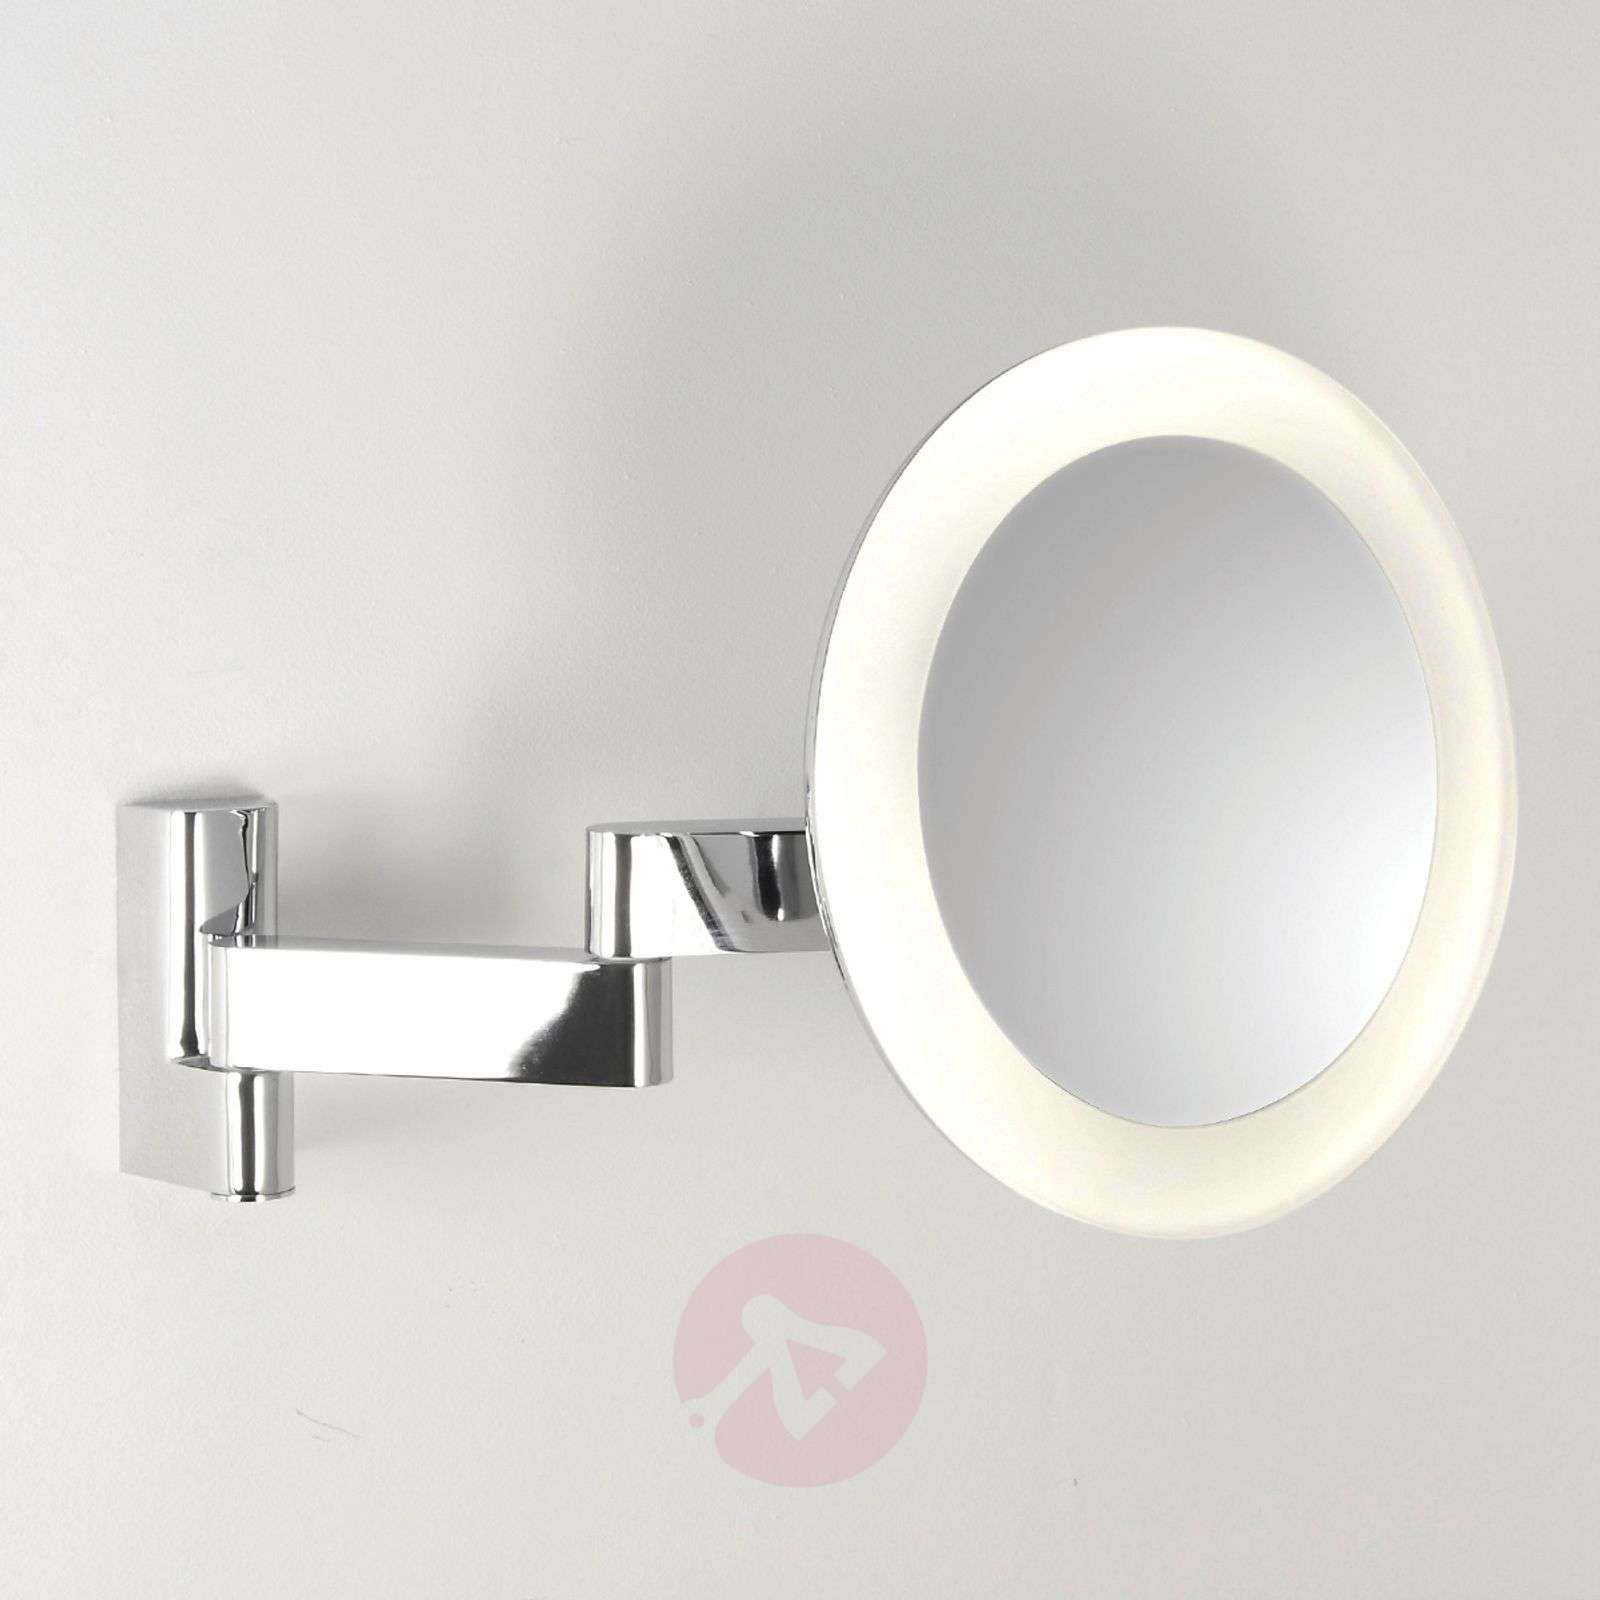 miroir grossissant niimi round avec clairage led. Black Bedroom Furniture Sets. Home Design Ideas